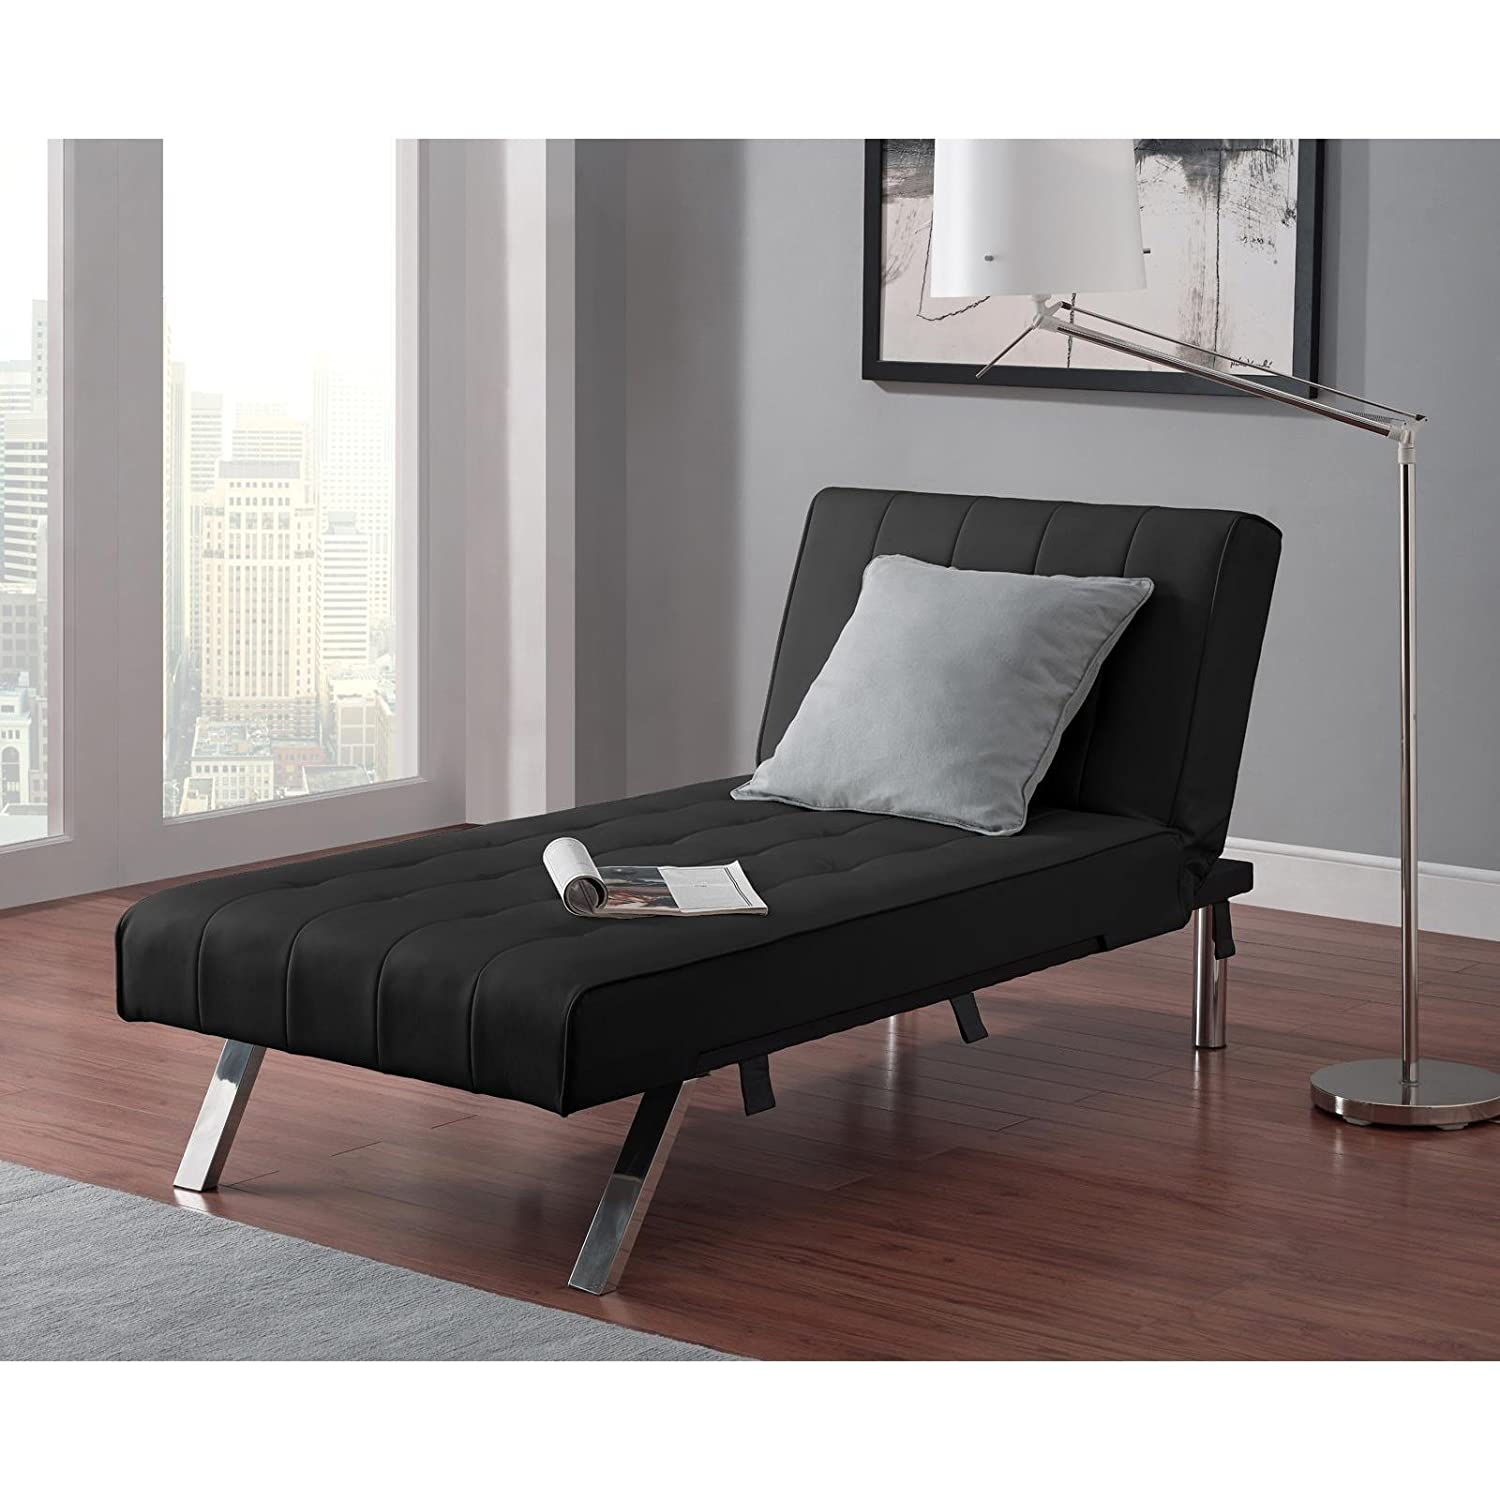 Amazon Emily Futon with Chaise Lounger super bonus set BLACK